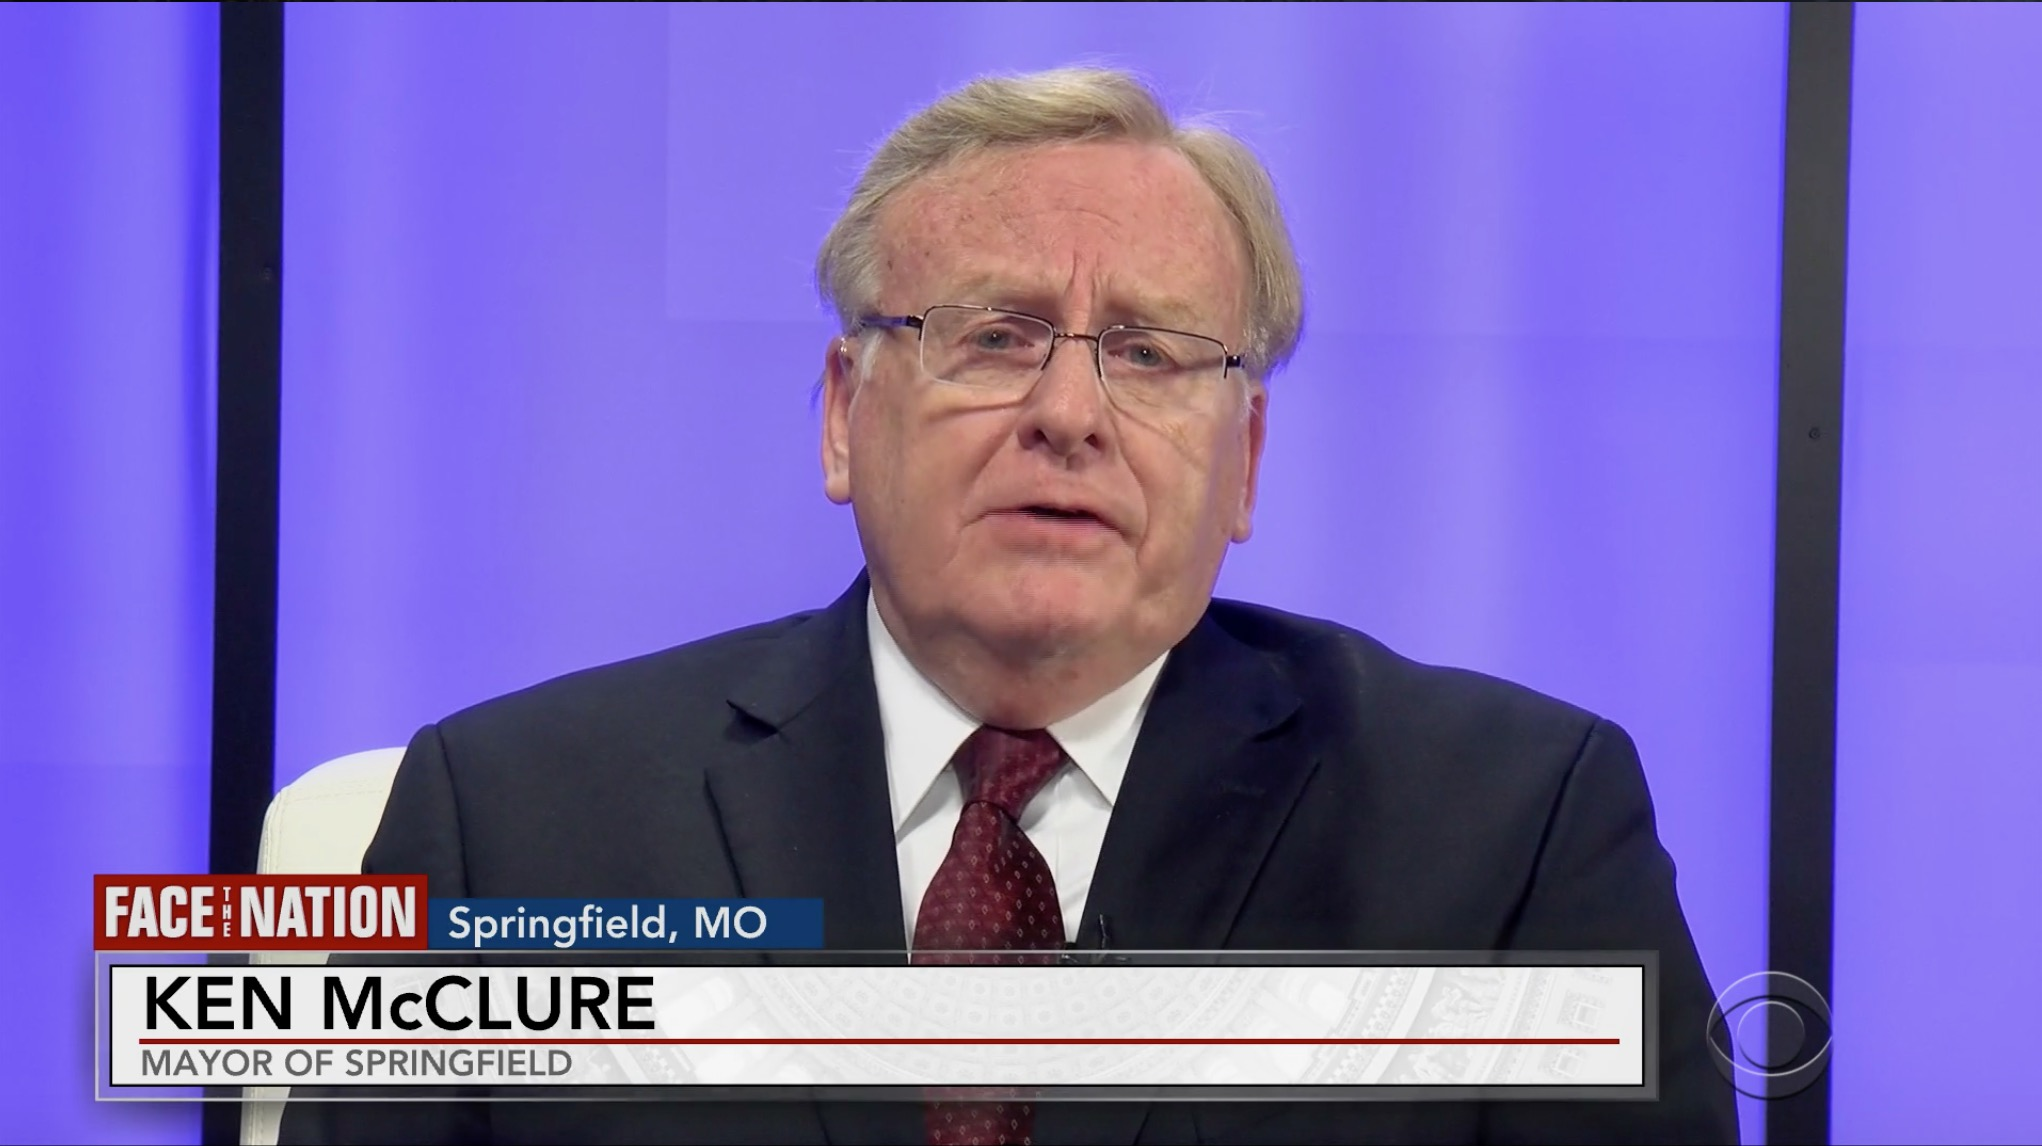 Springfield Mayor Ken McClure speaking against a purple background with his name and title placed at the bottom of the image.